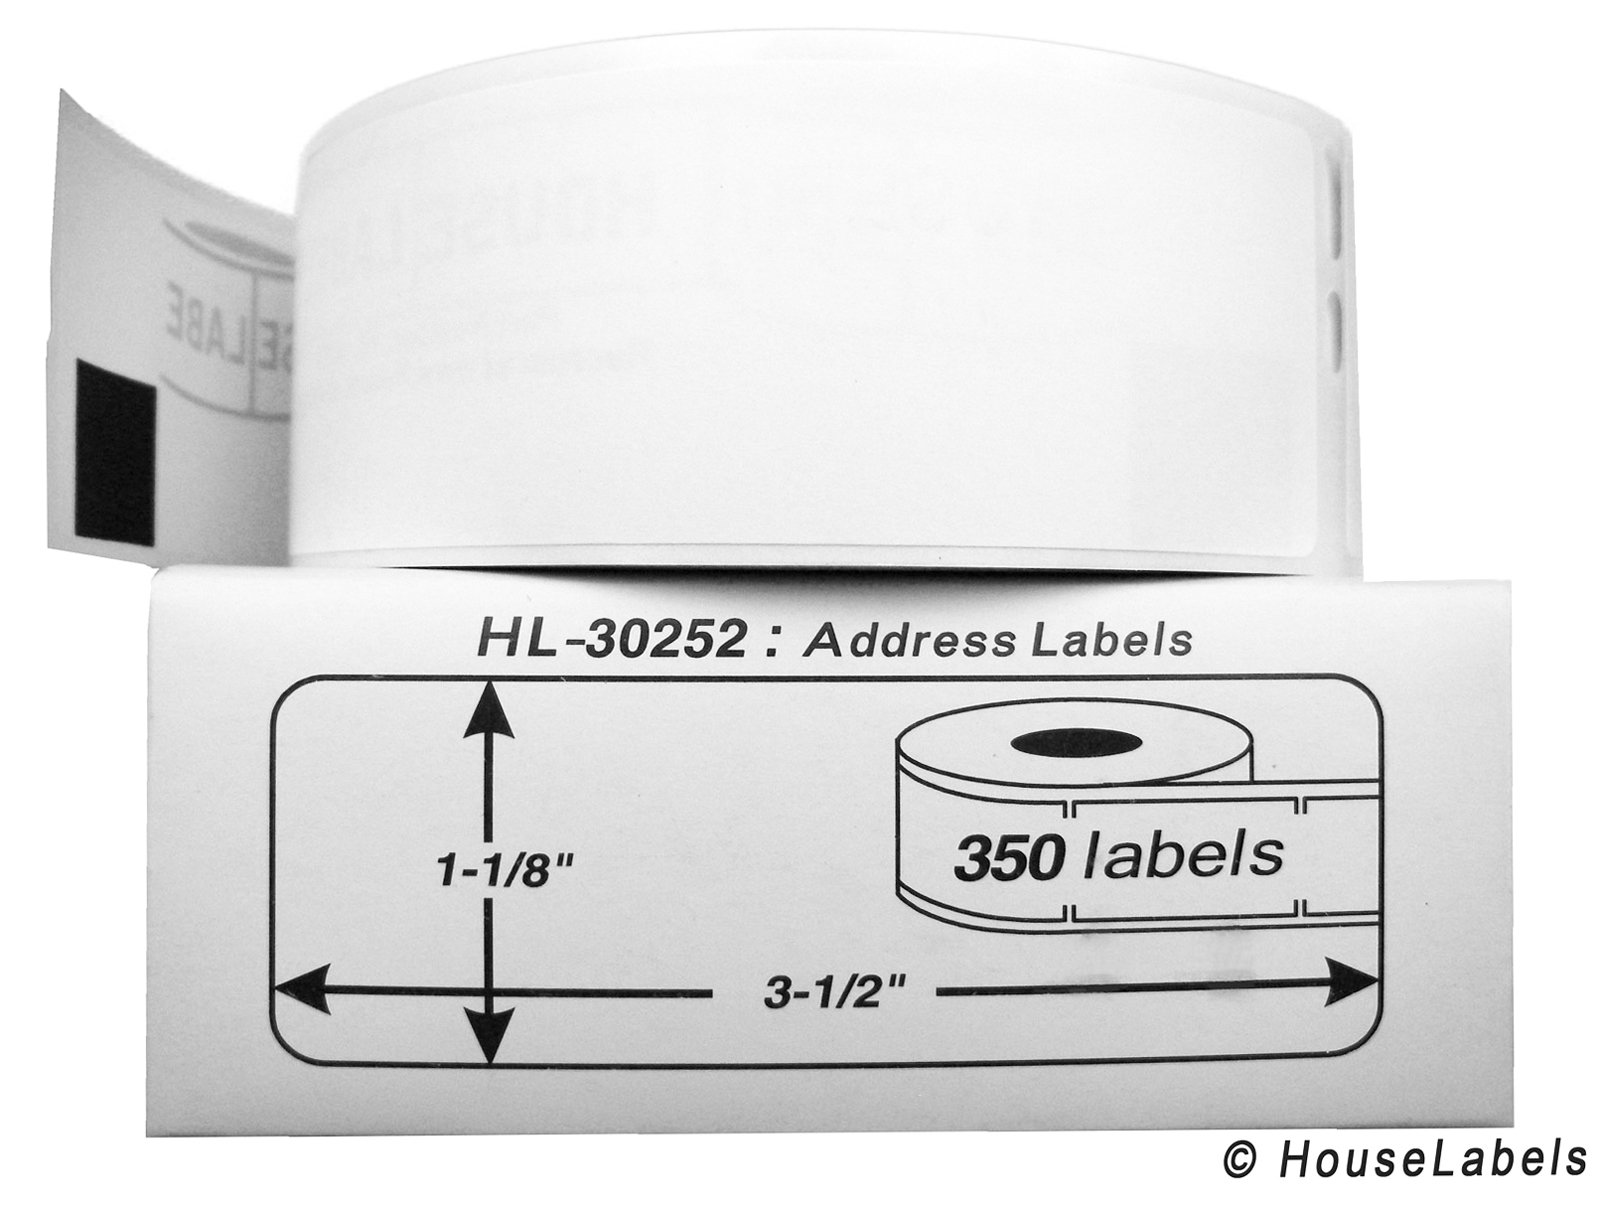 200 Rolls; 350 Labels per Roll of DYMO-Compatible 30252 Address Labels (1-1/8'' x 3-1/2'') -- BPA Free!